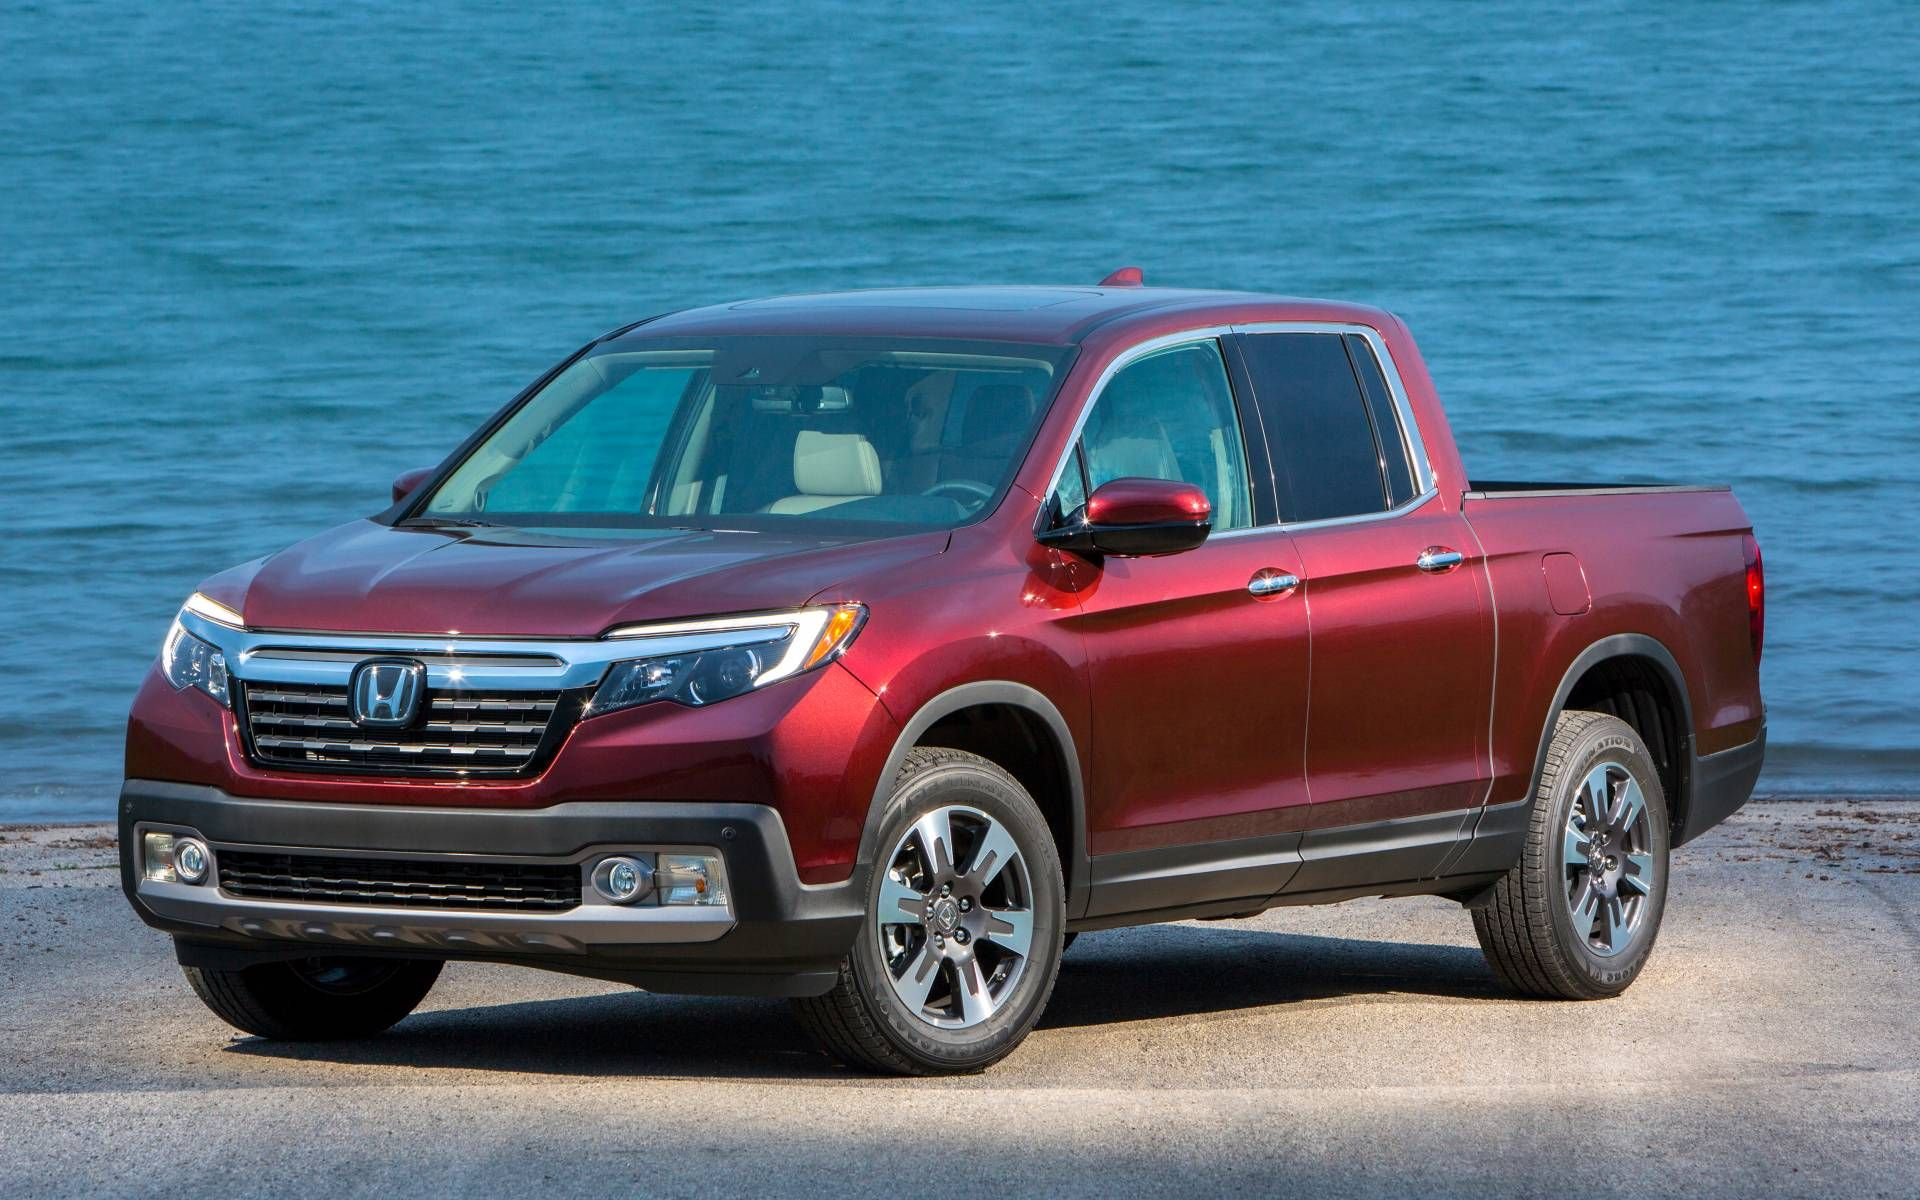 Pin By Alain A On Automobile Neuve 2019 A 2021 In 2020 Honda Ridgeline Honda Honda Ridgeline 2017